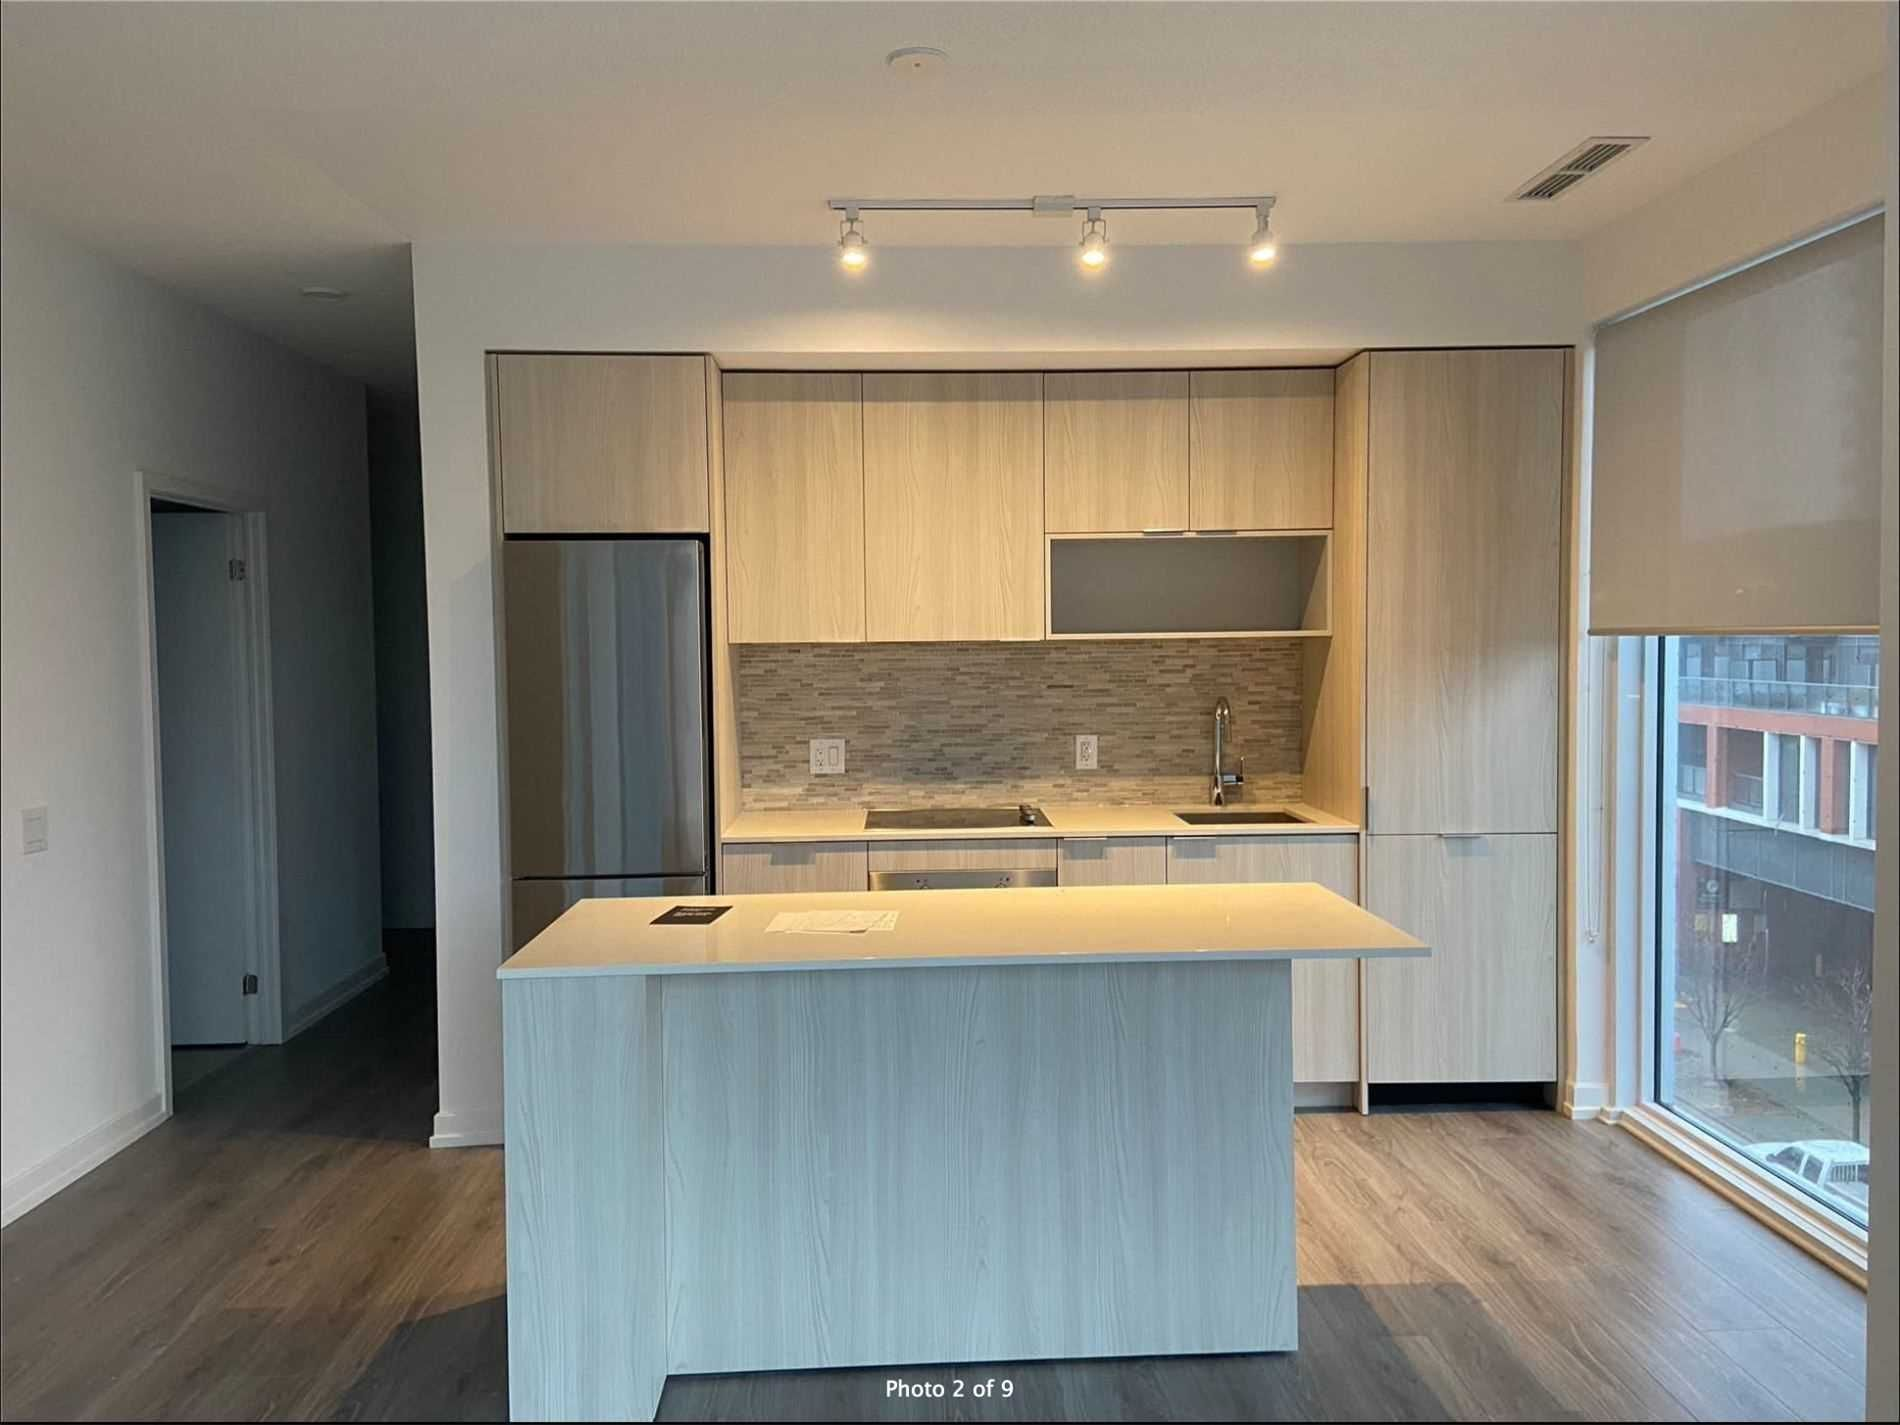 20 Tubman Ave, unit 405 for rent in Toronto - image #2